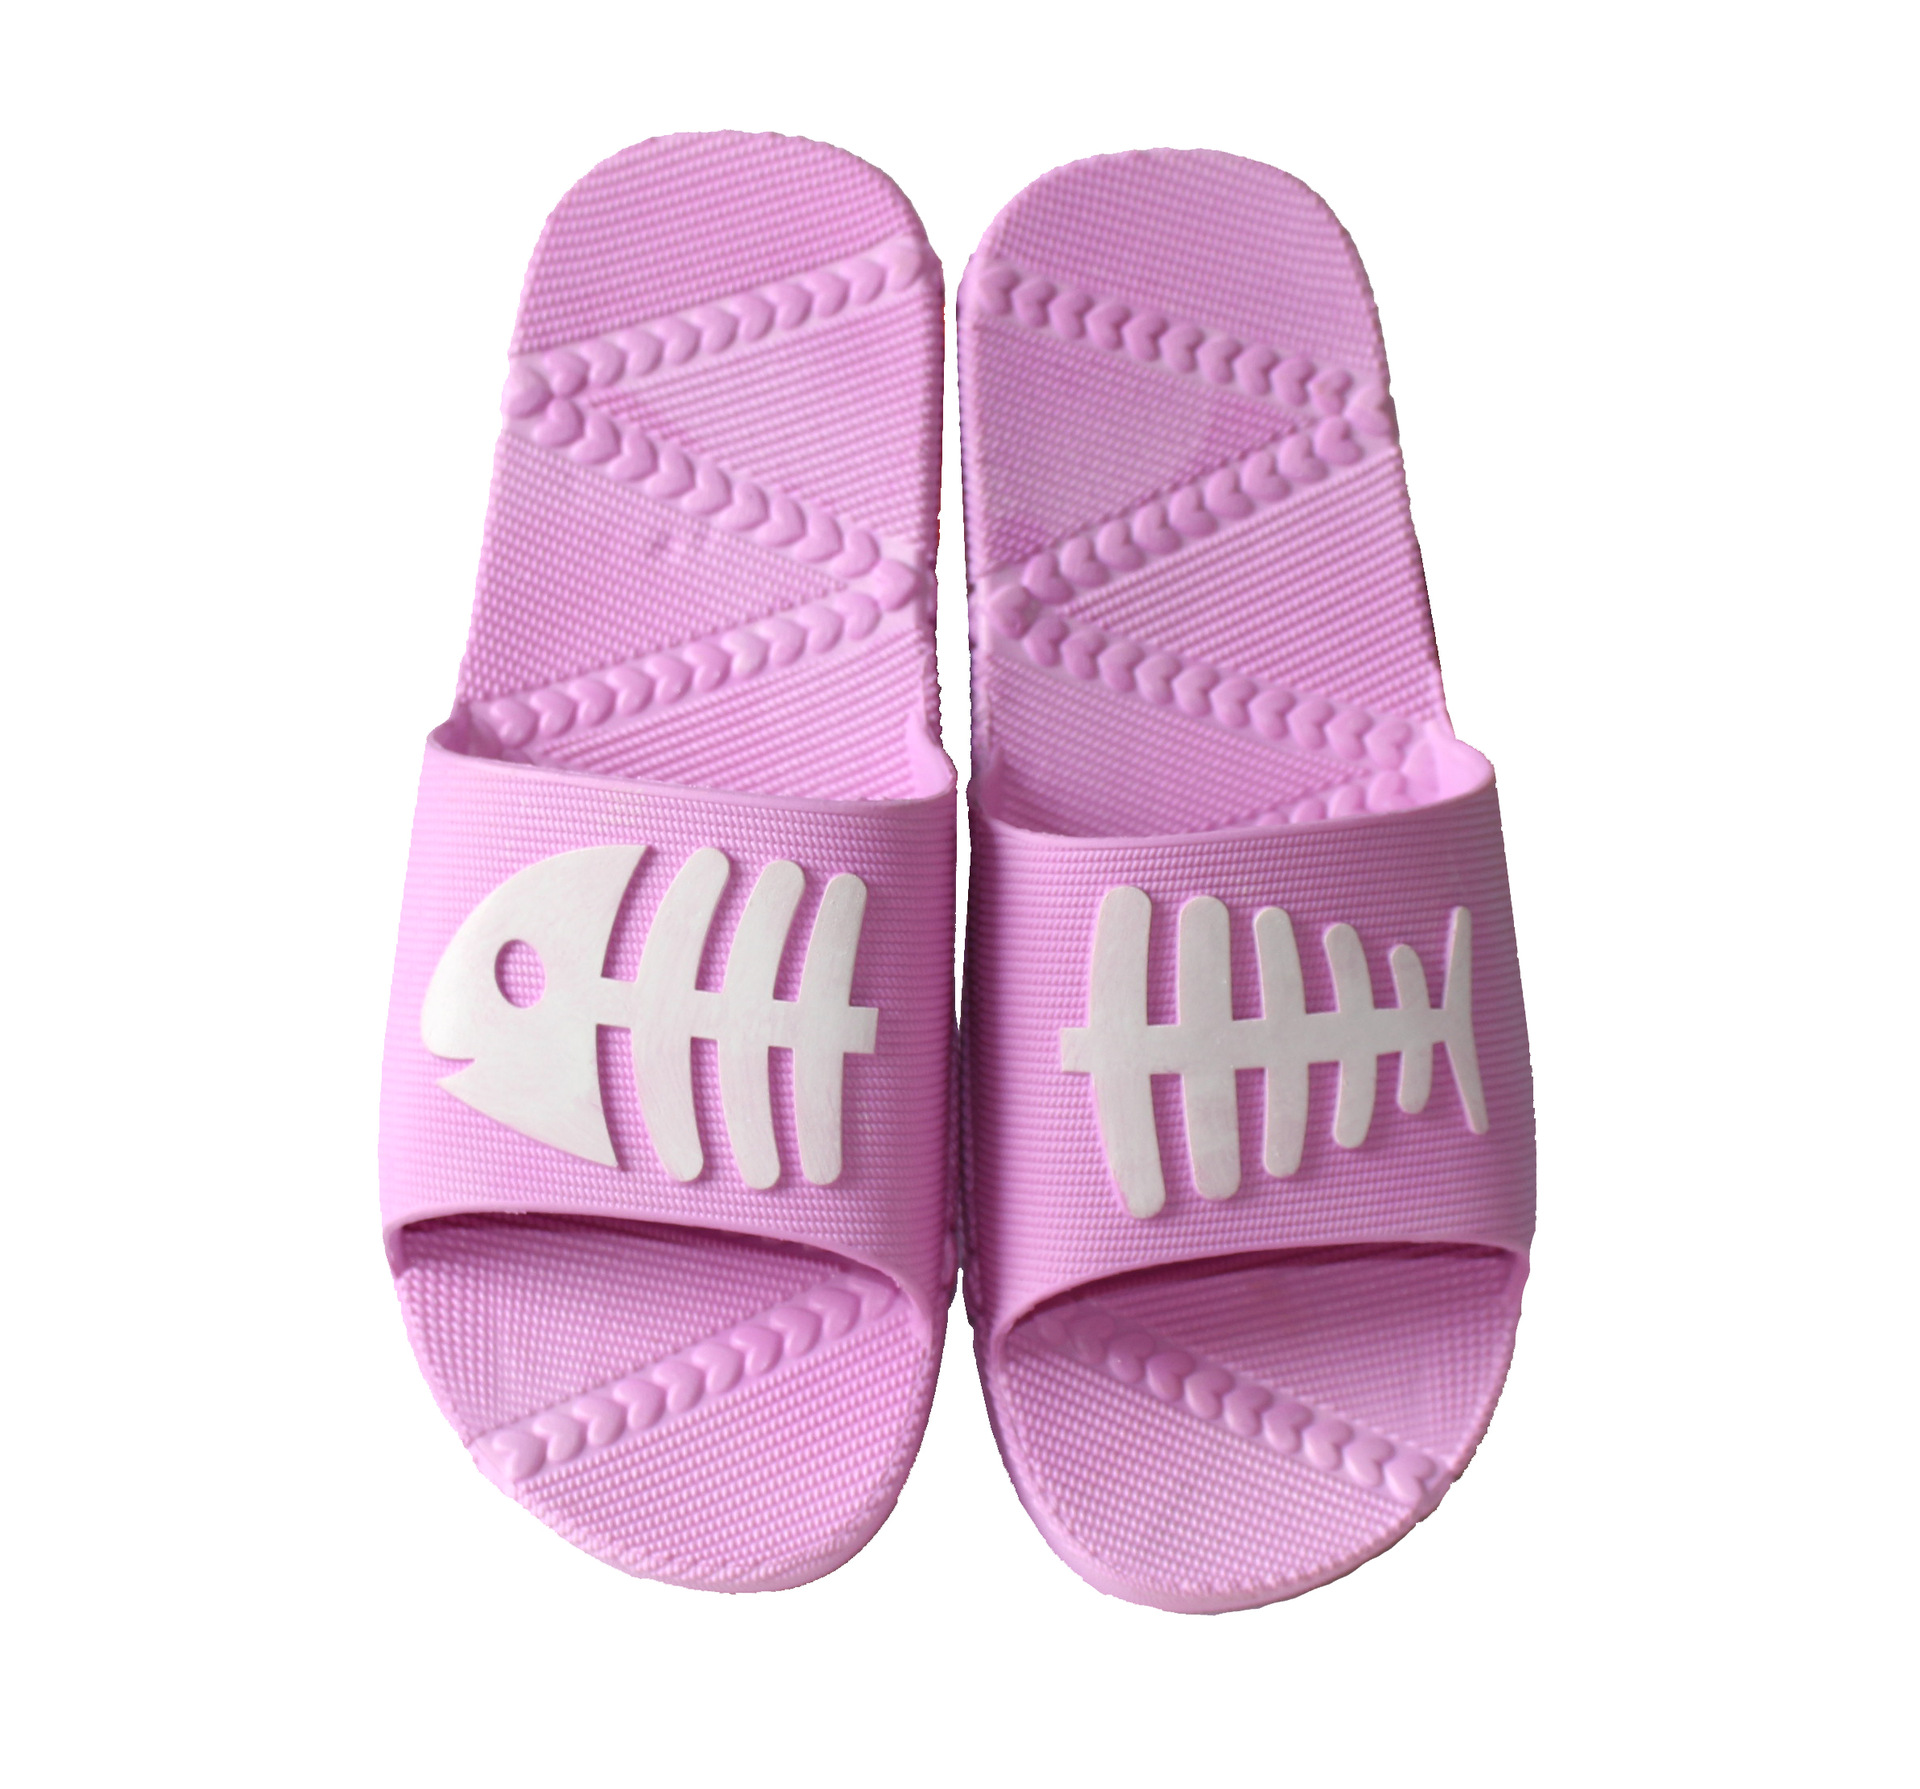 Fishbone Design Women S Bathroom Slippers Home Indoor Non Slip Thick Bottom In From Shoes On Aliexpress Alibaba Group